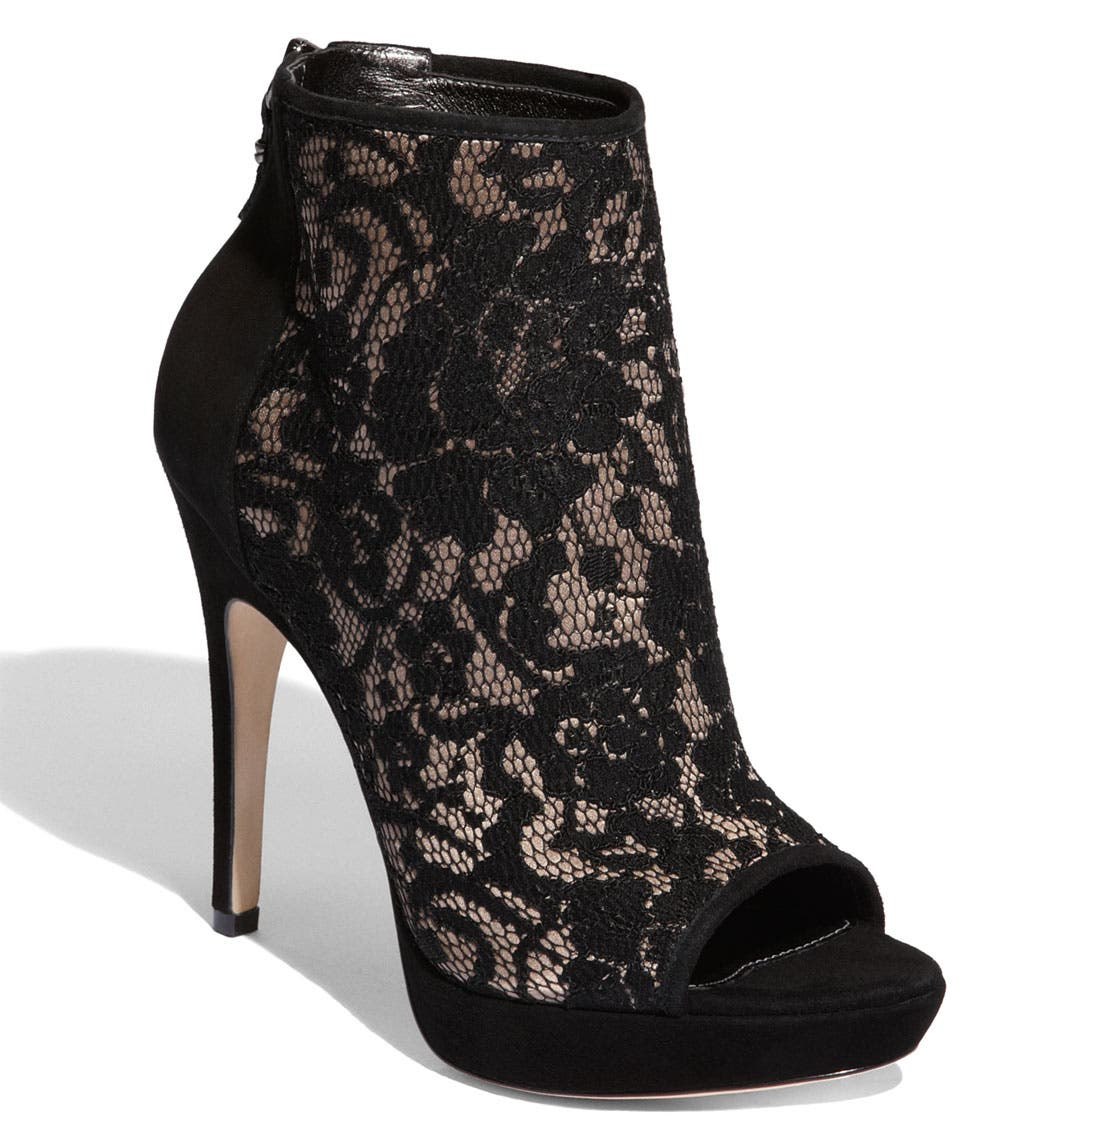 Alternate Image 1 Selected - Via Spiga 'Evanna' Lace Bootie